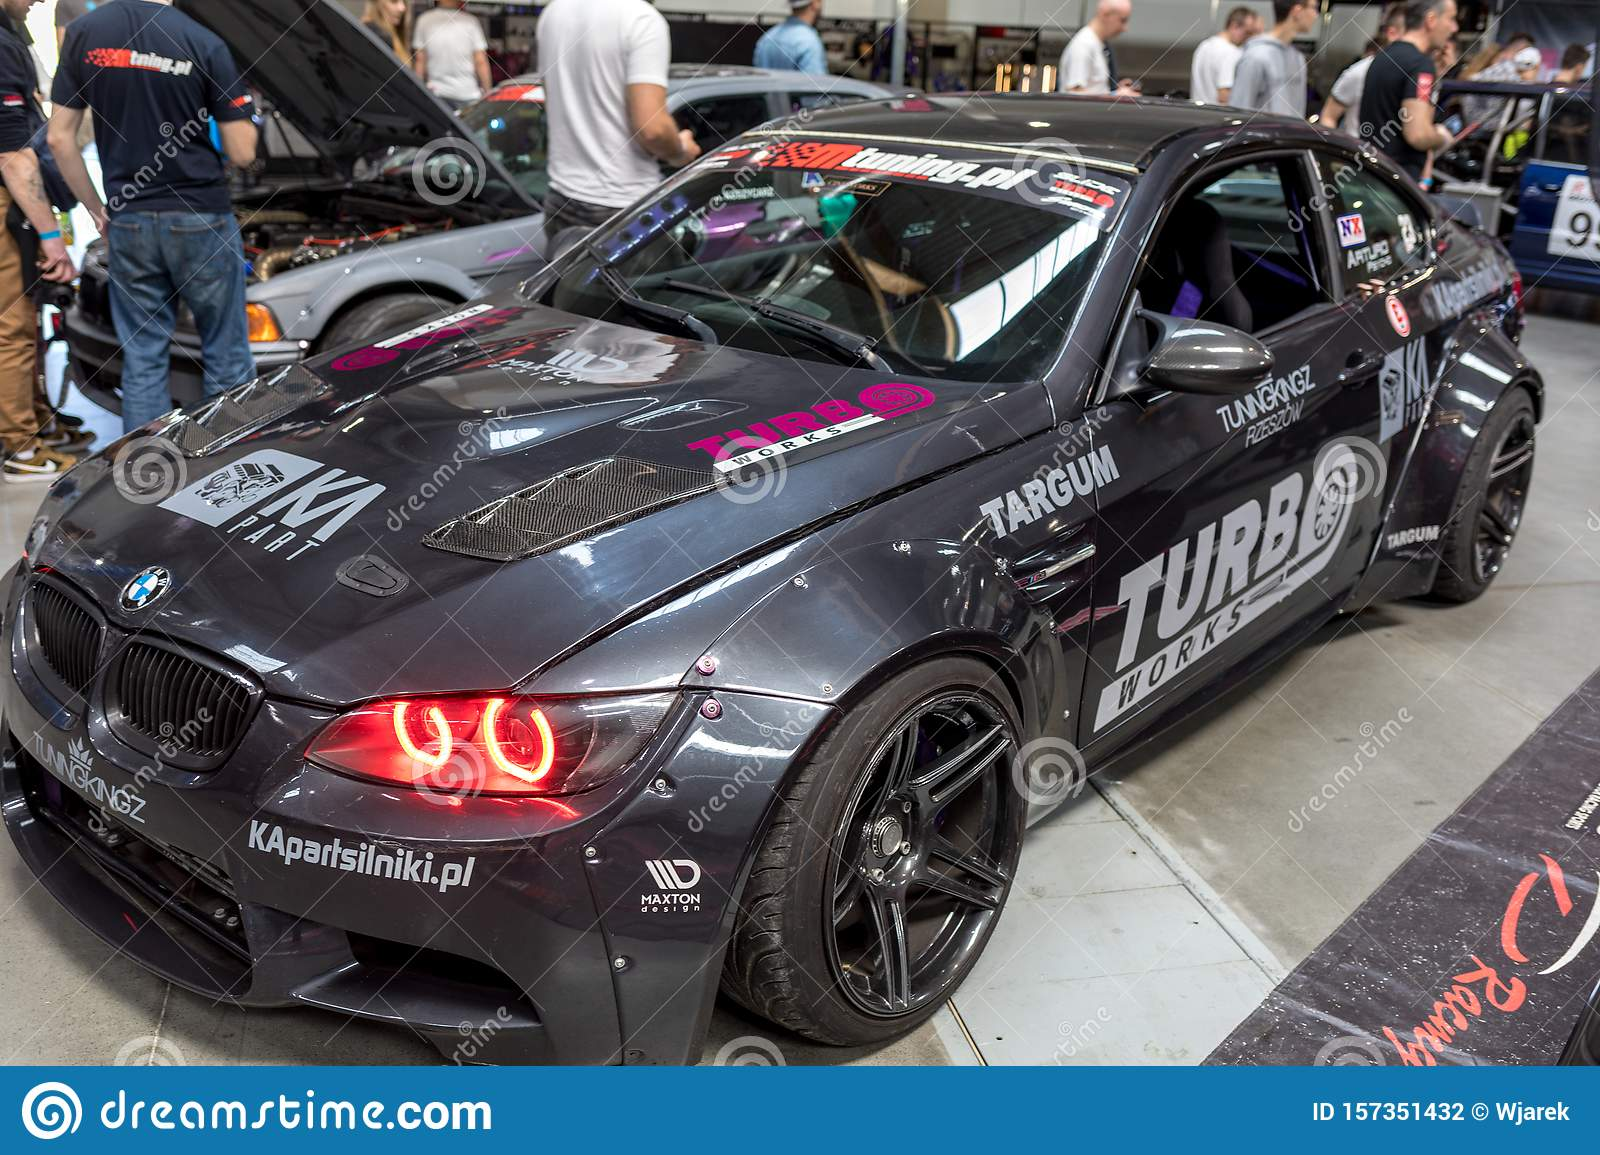 Drift Car Displayed At Moto Show In Cracow Poland Editorial Photography Image Of Luxury Headlight 157351432